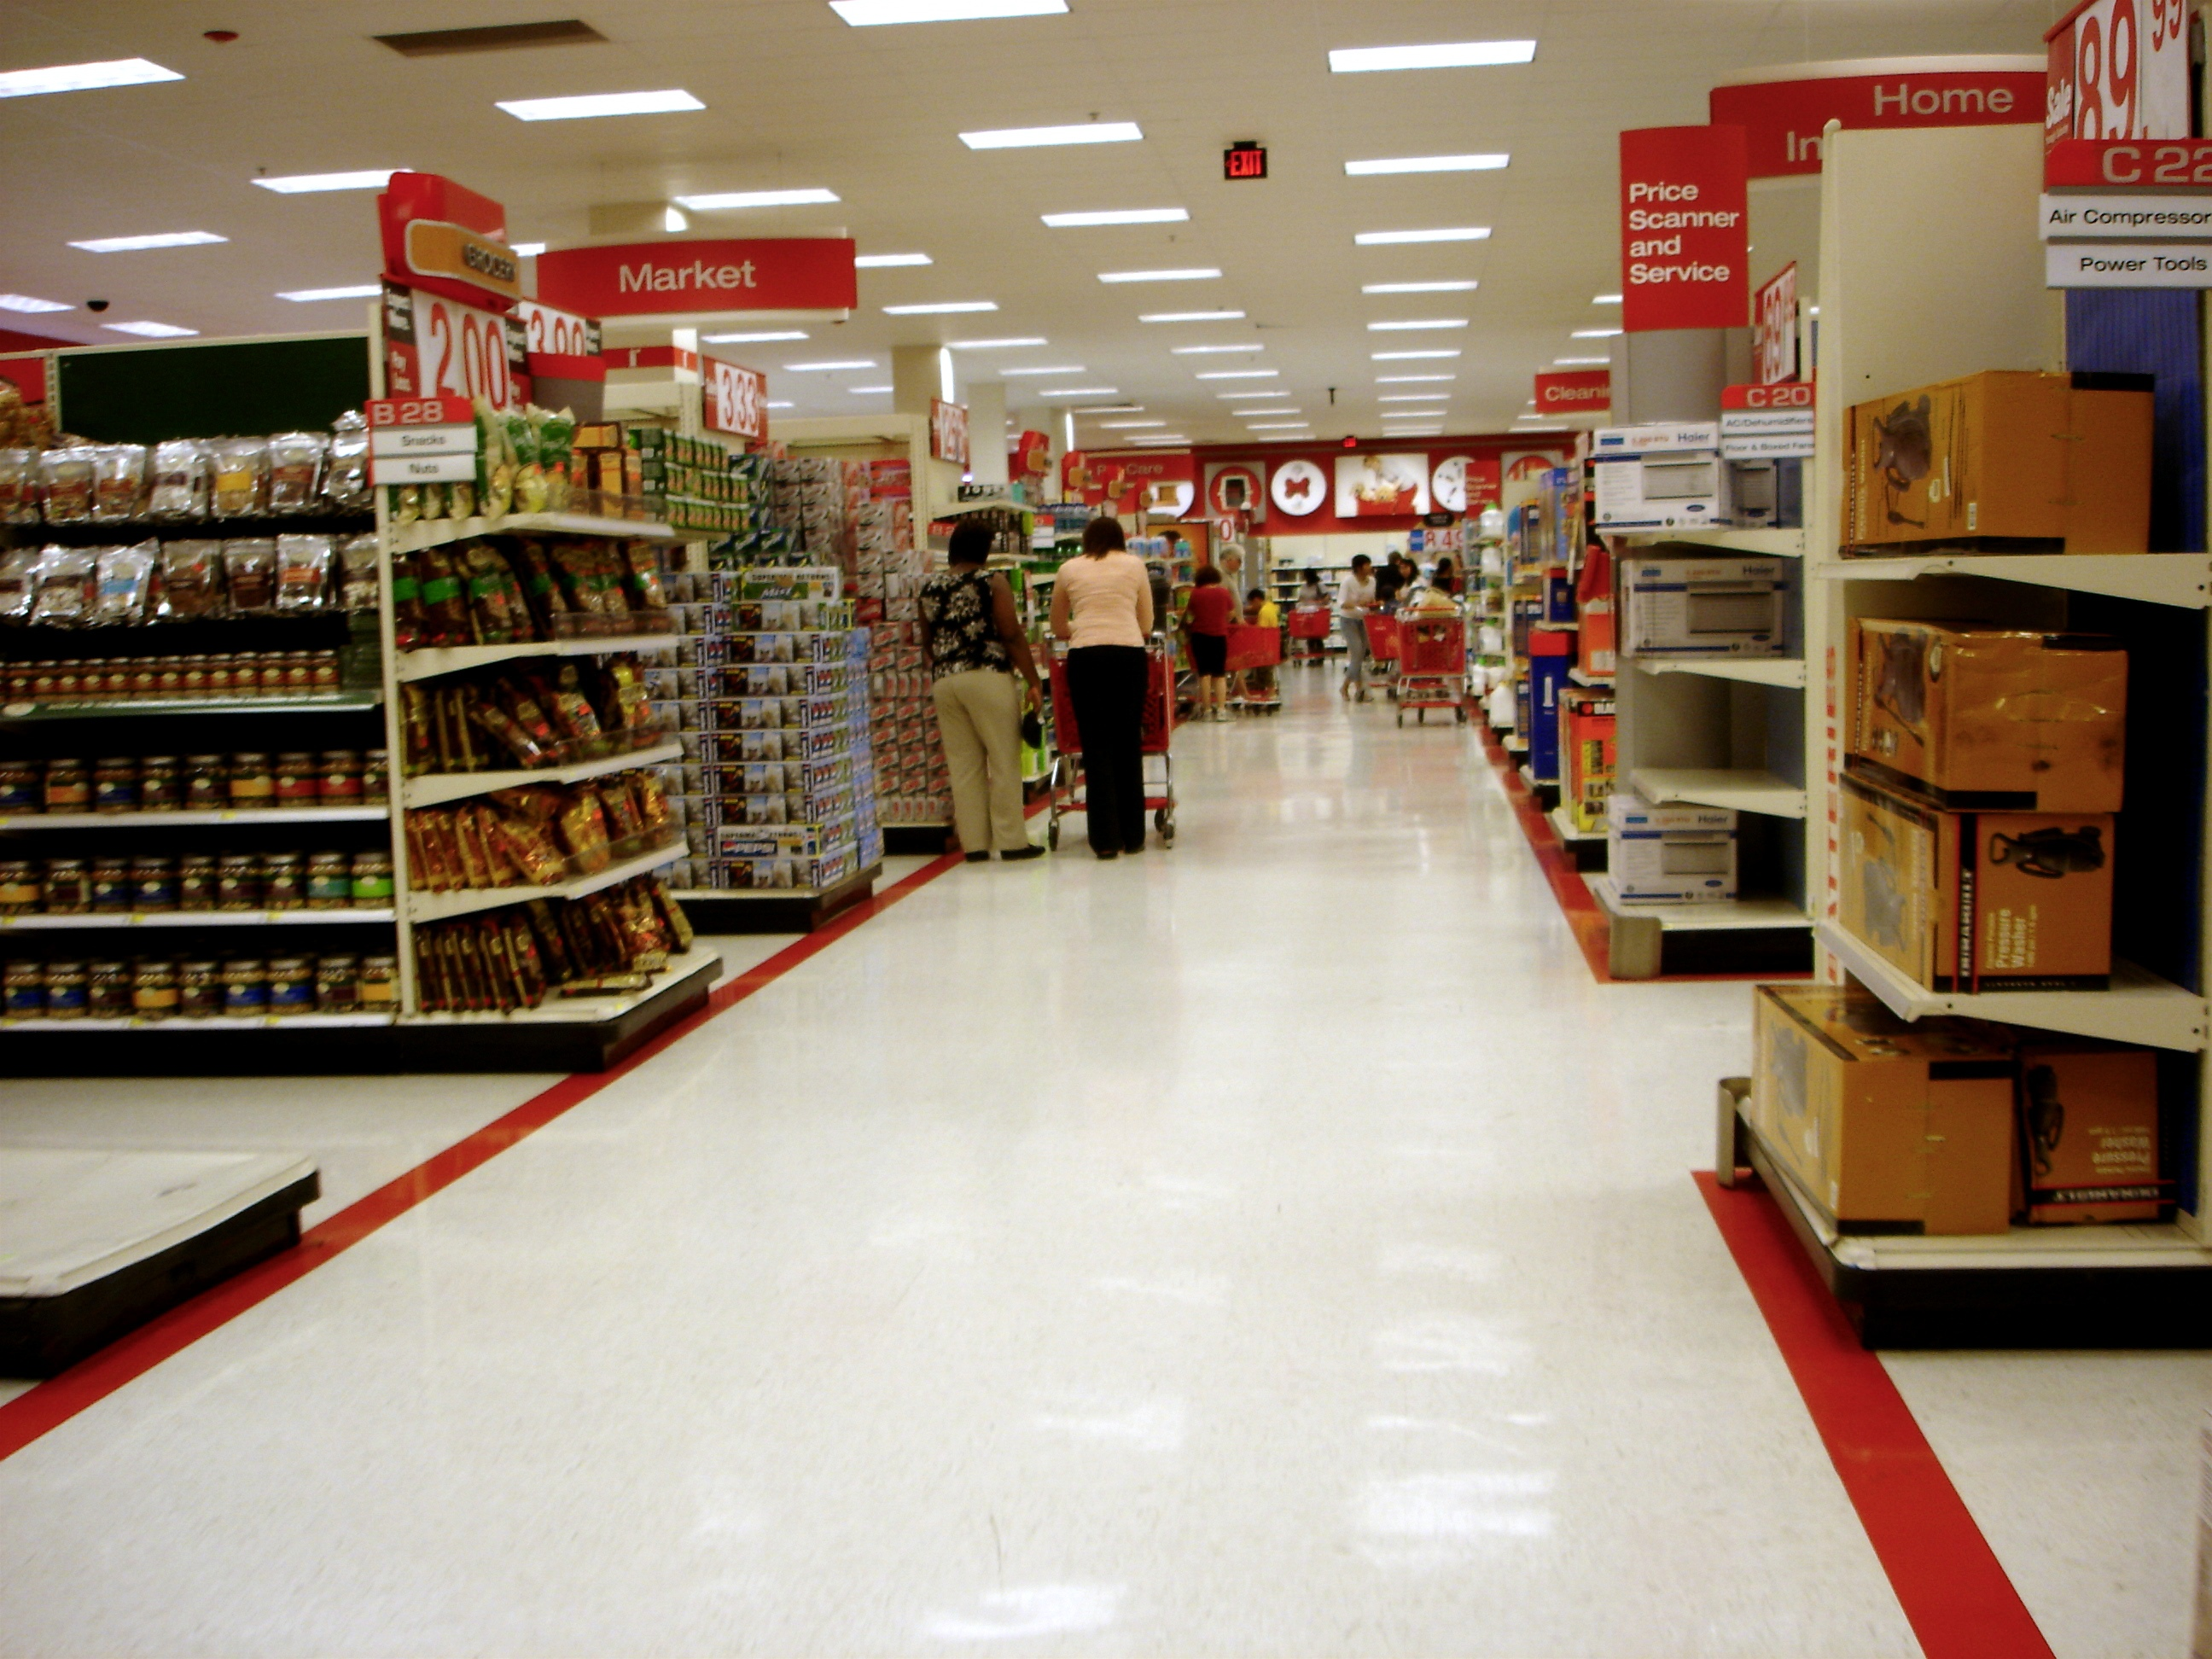 http://upload.wikimedia.org/wikipedia/commons/a/ac/Target_interior.JPG